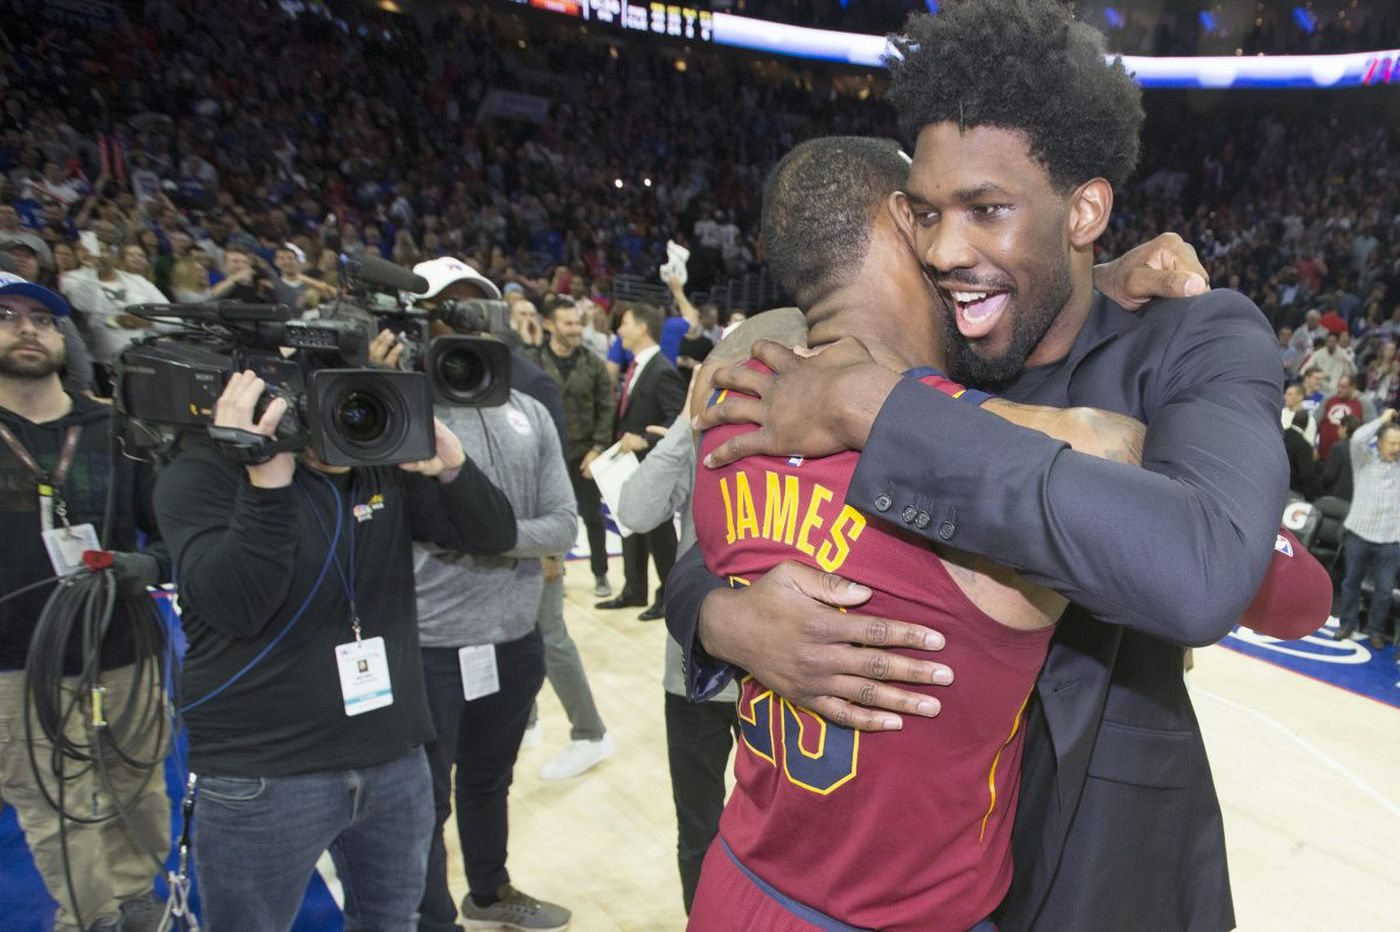 Joel Embiid says he's ready to help Sixers recruit top free agents this offseason